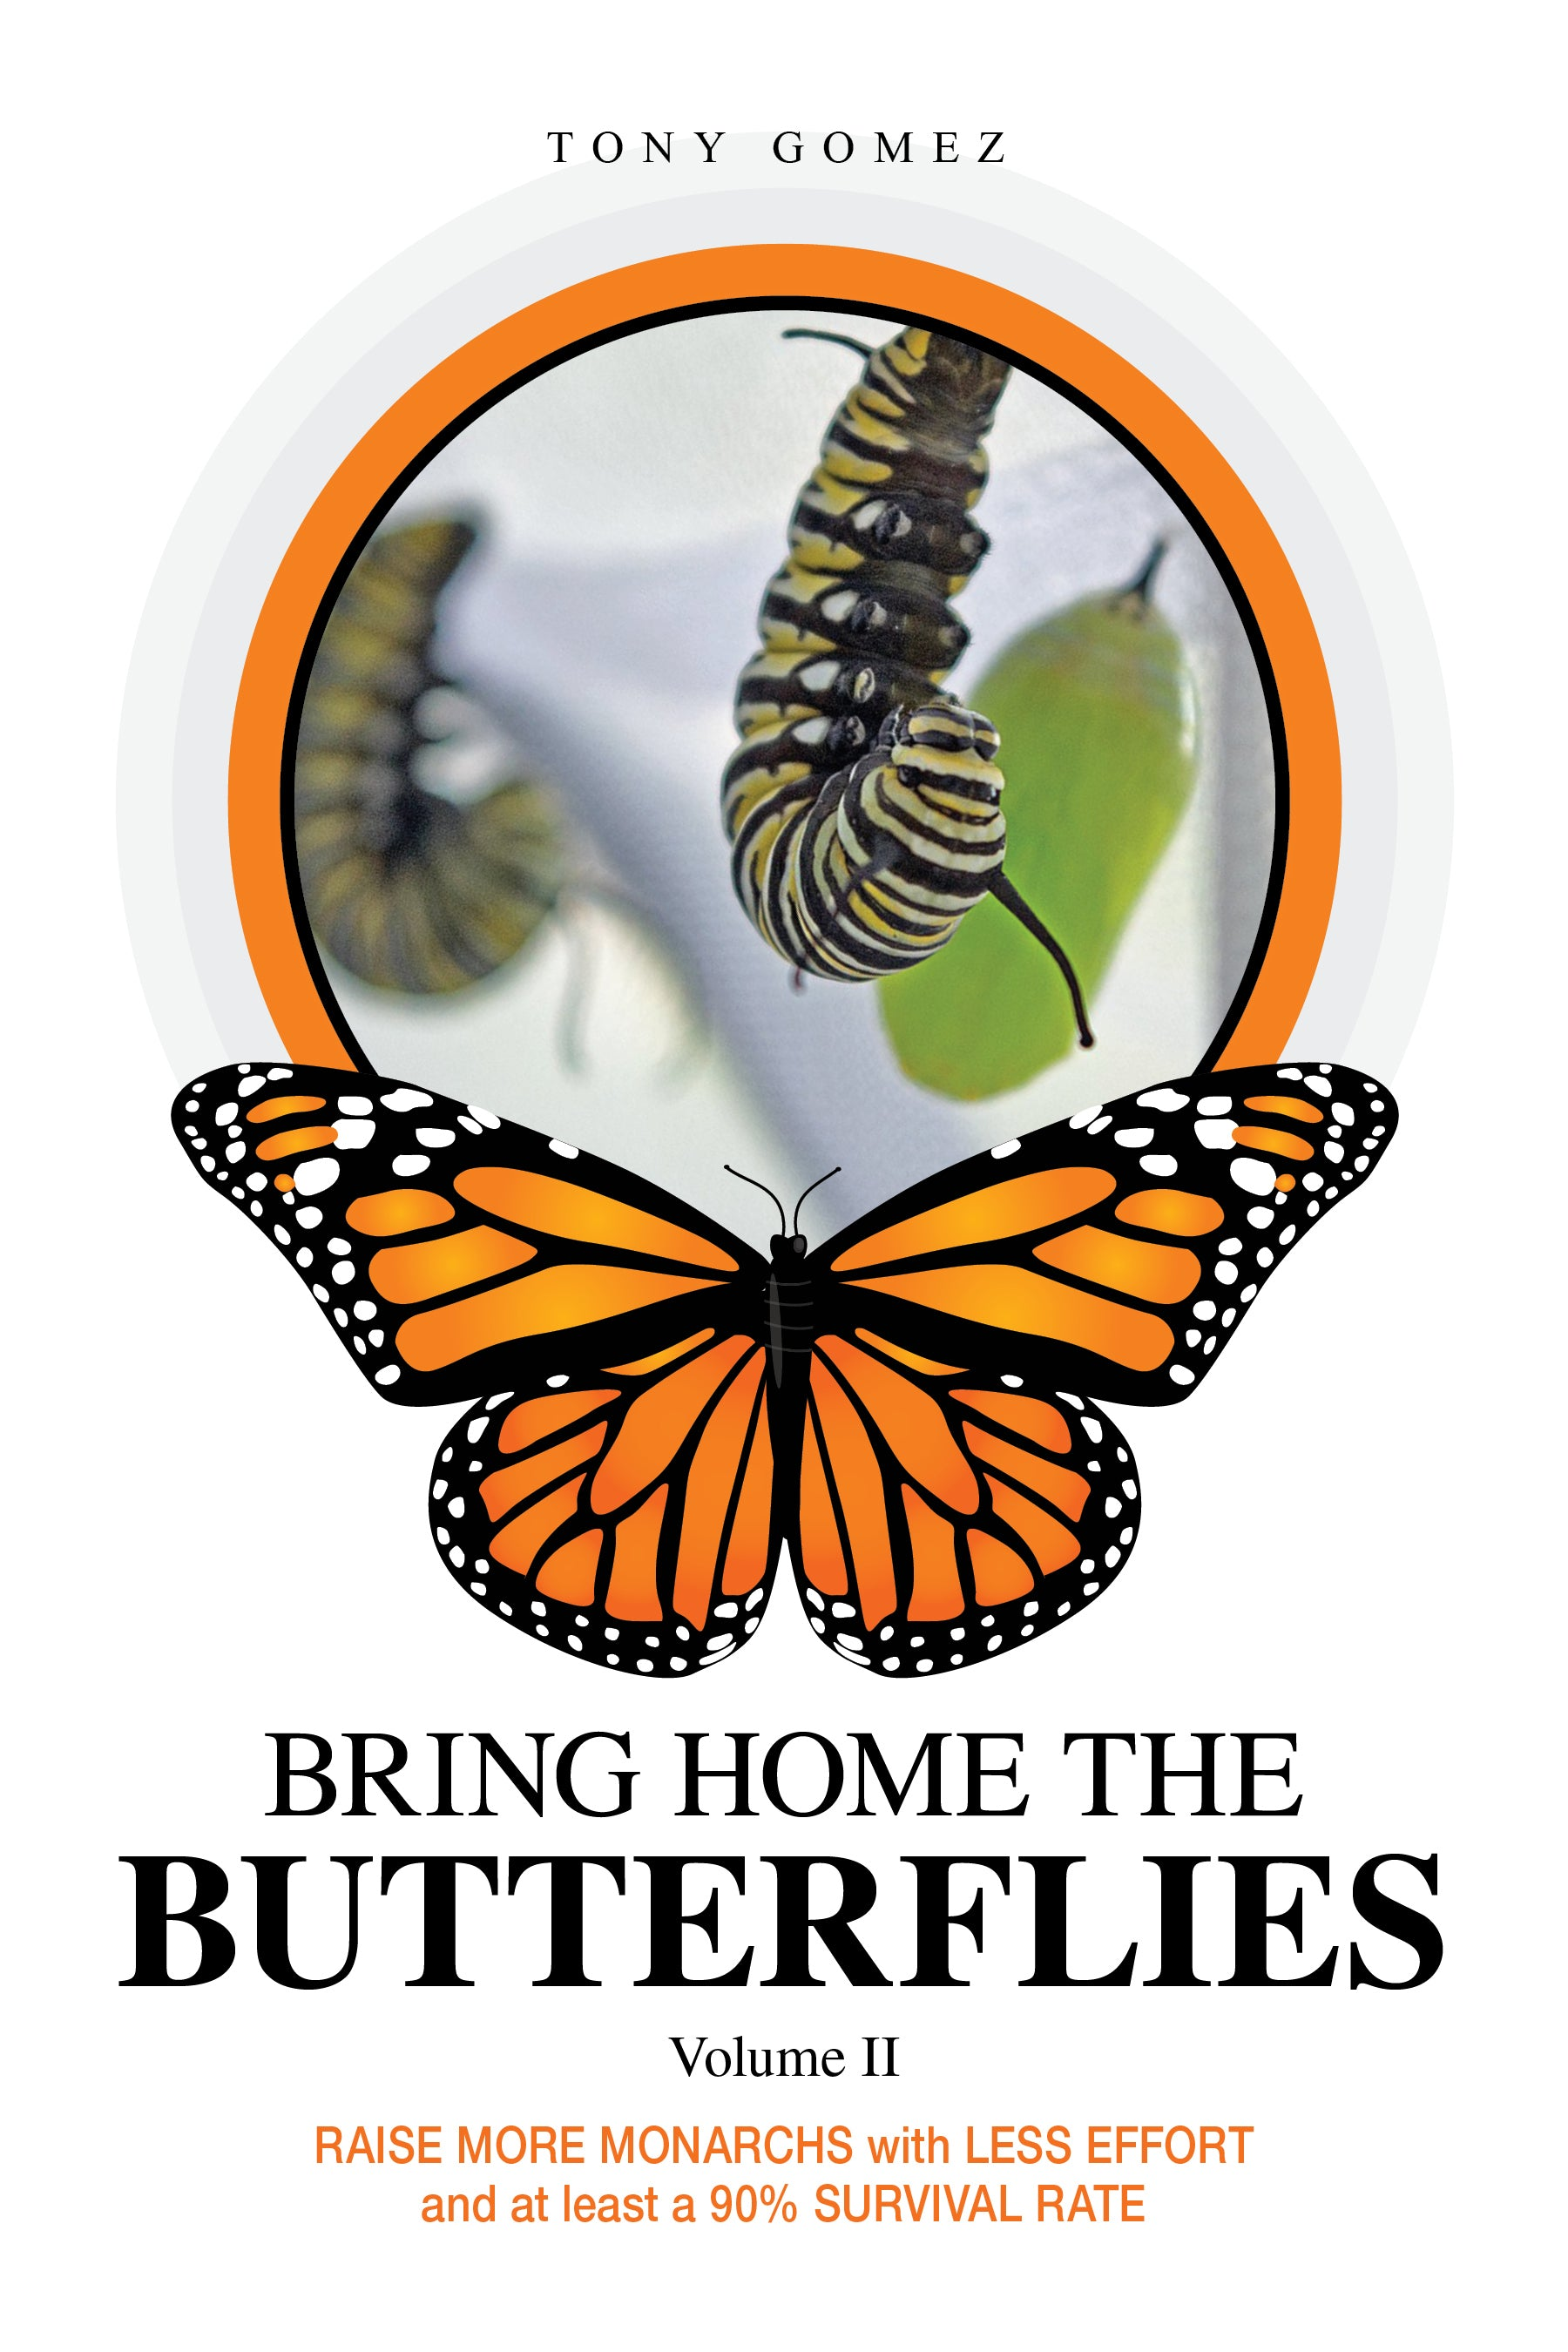 Raise More Monarch Butterflies with Less Effort and At Least a 90% Survival Rate. The tips and techniques in this raising guide will help you raise HEALTHY monarchs through all 4 stages of the butterfly life cycle.